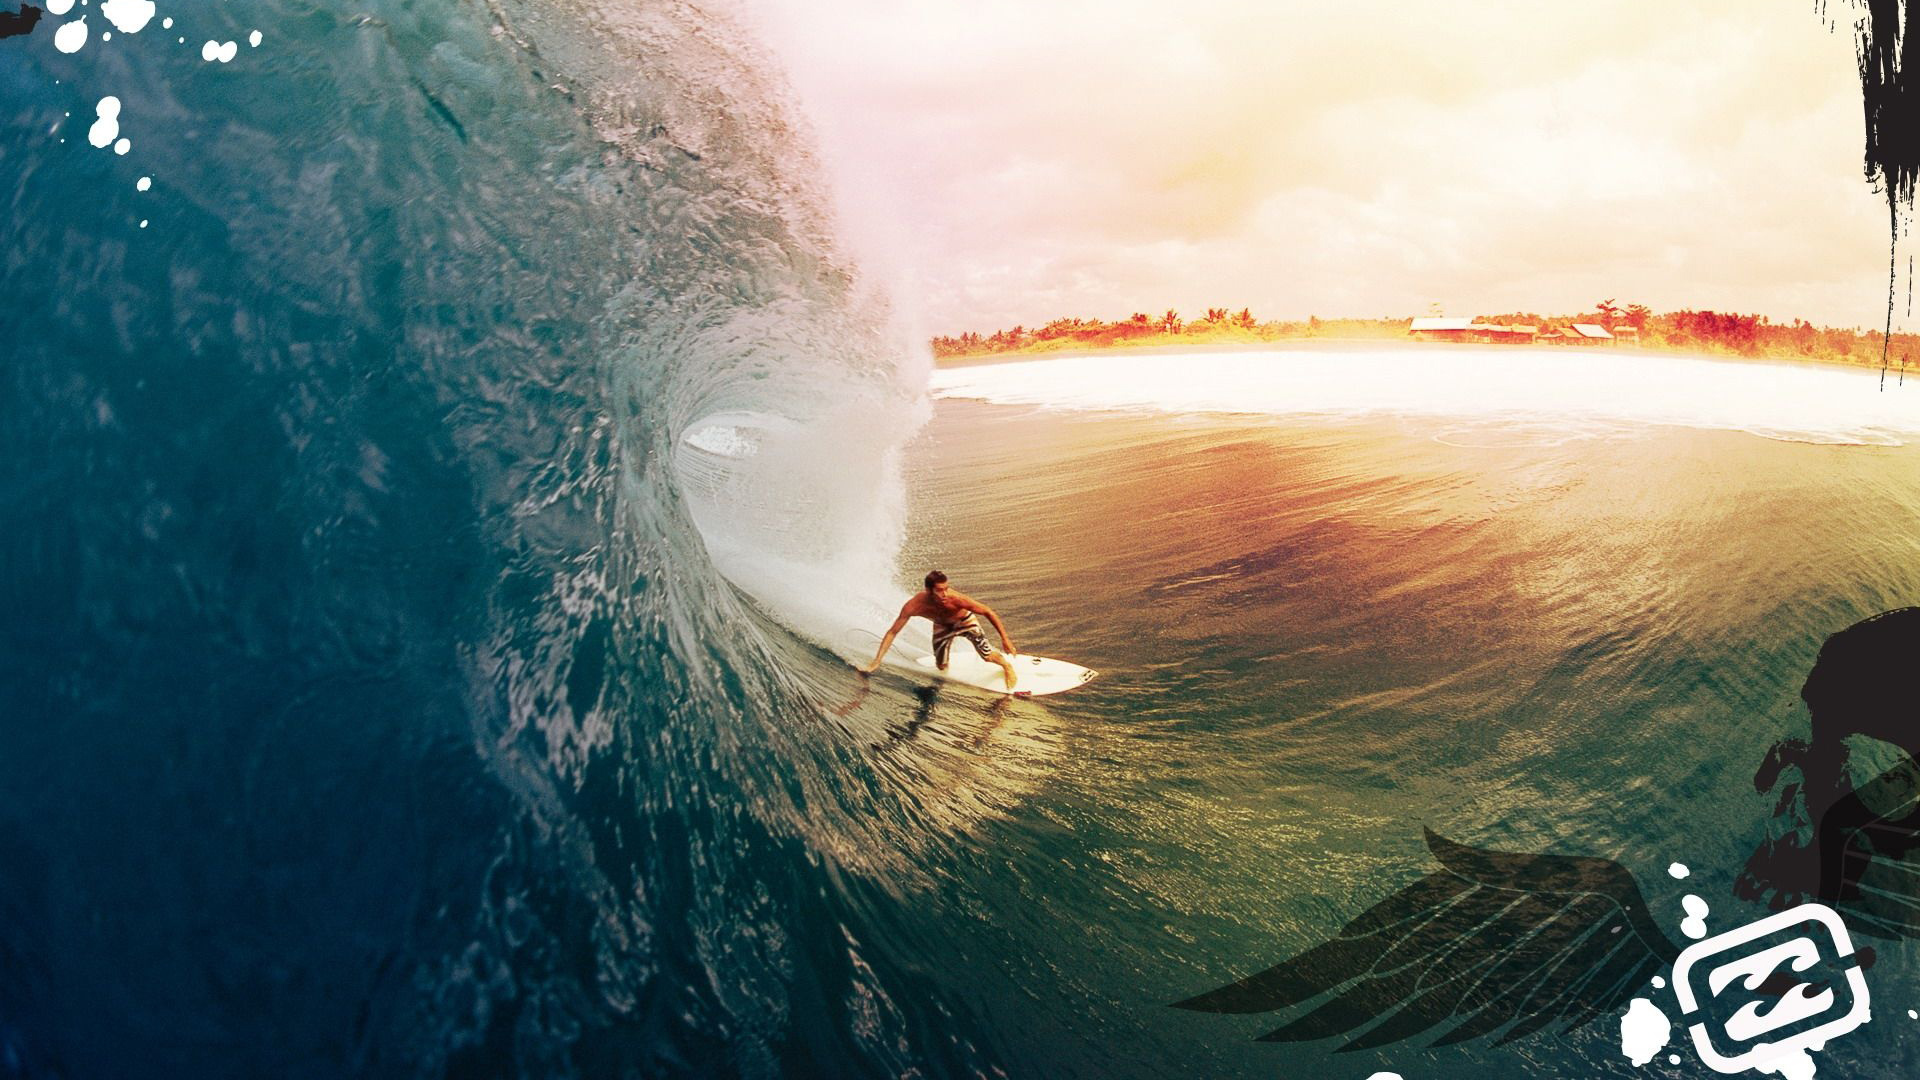 awesome surf surfing widescreen high definition wallpaper for 1920x1080